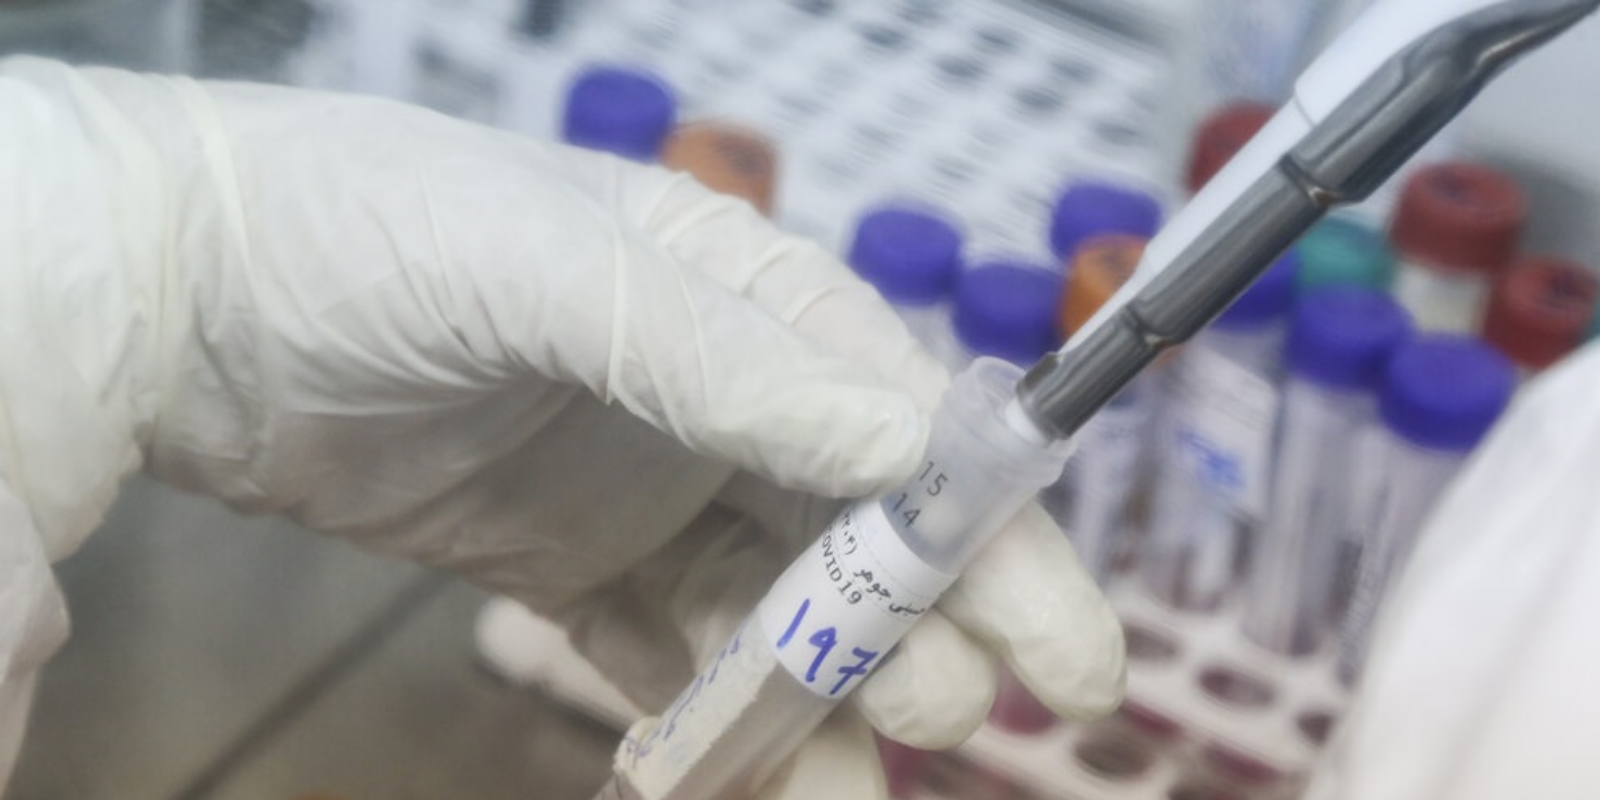 Coronavirus testing in Ontario hits new record highs in testing and infections